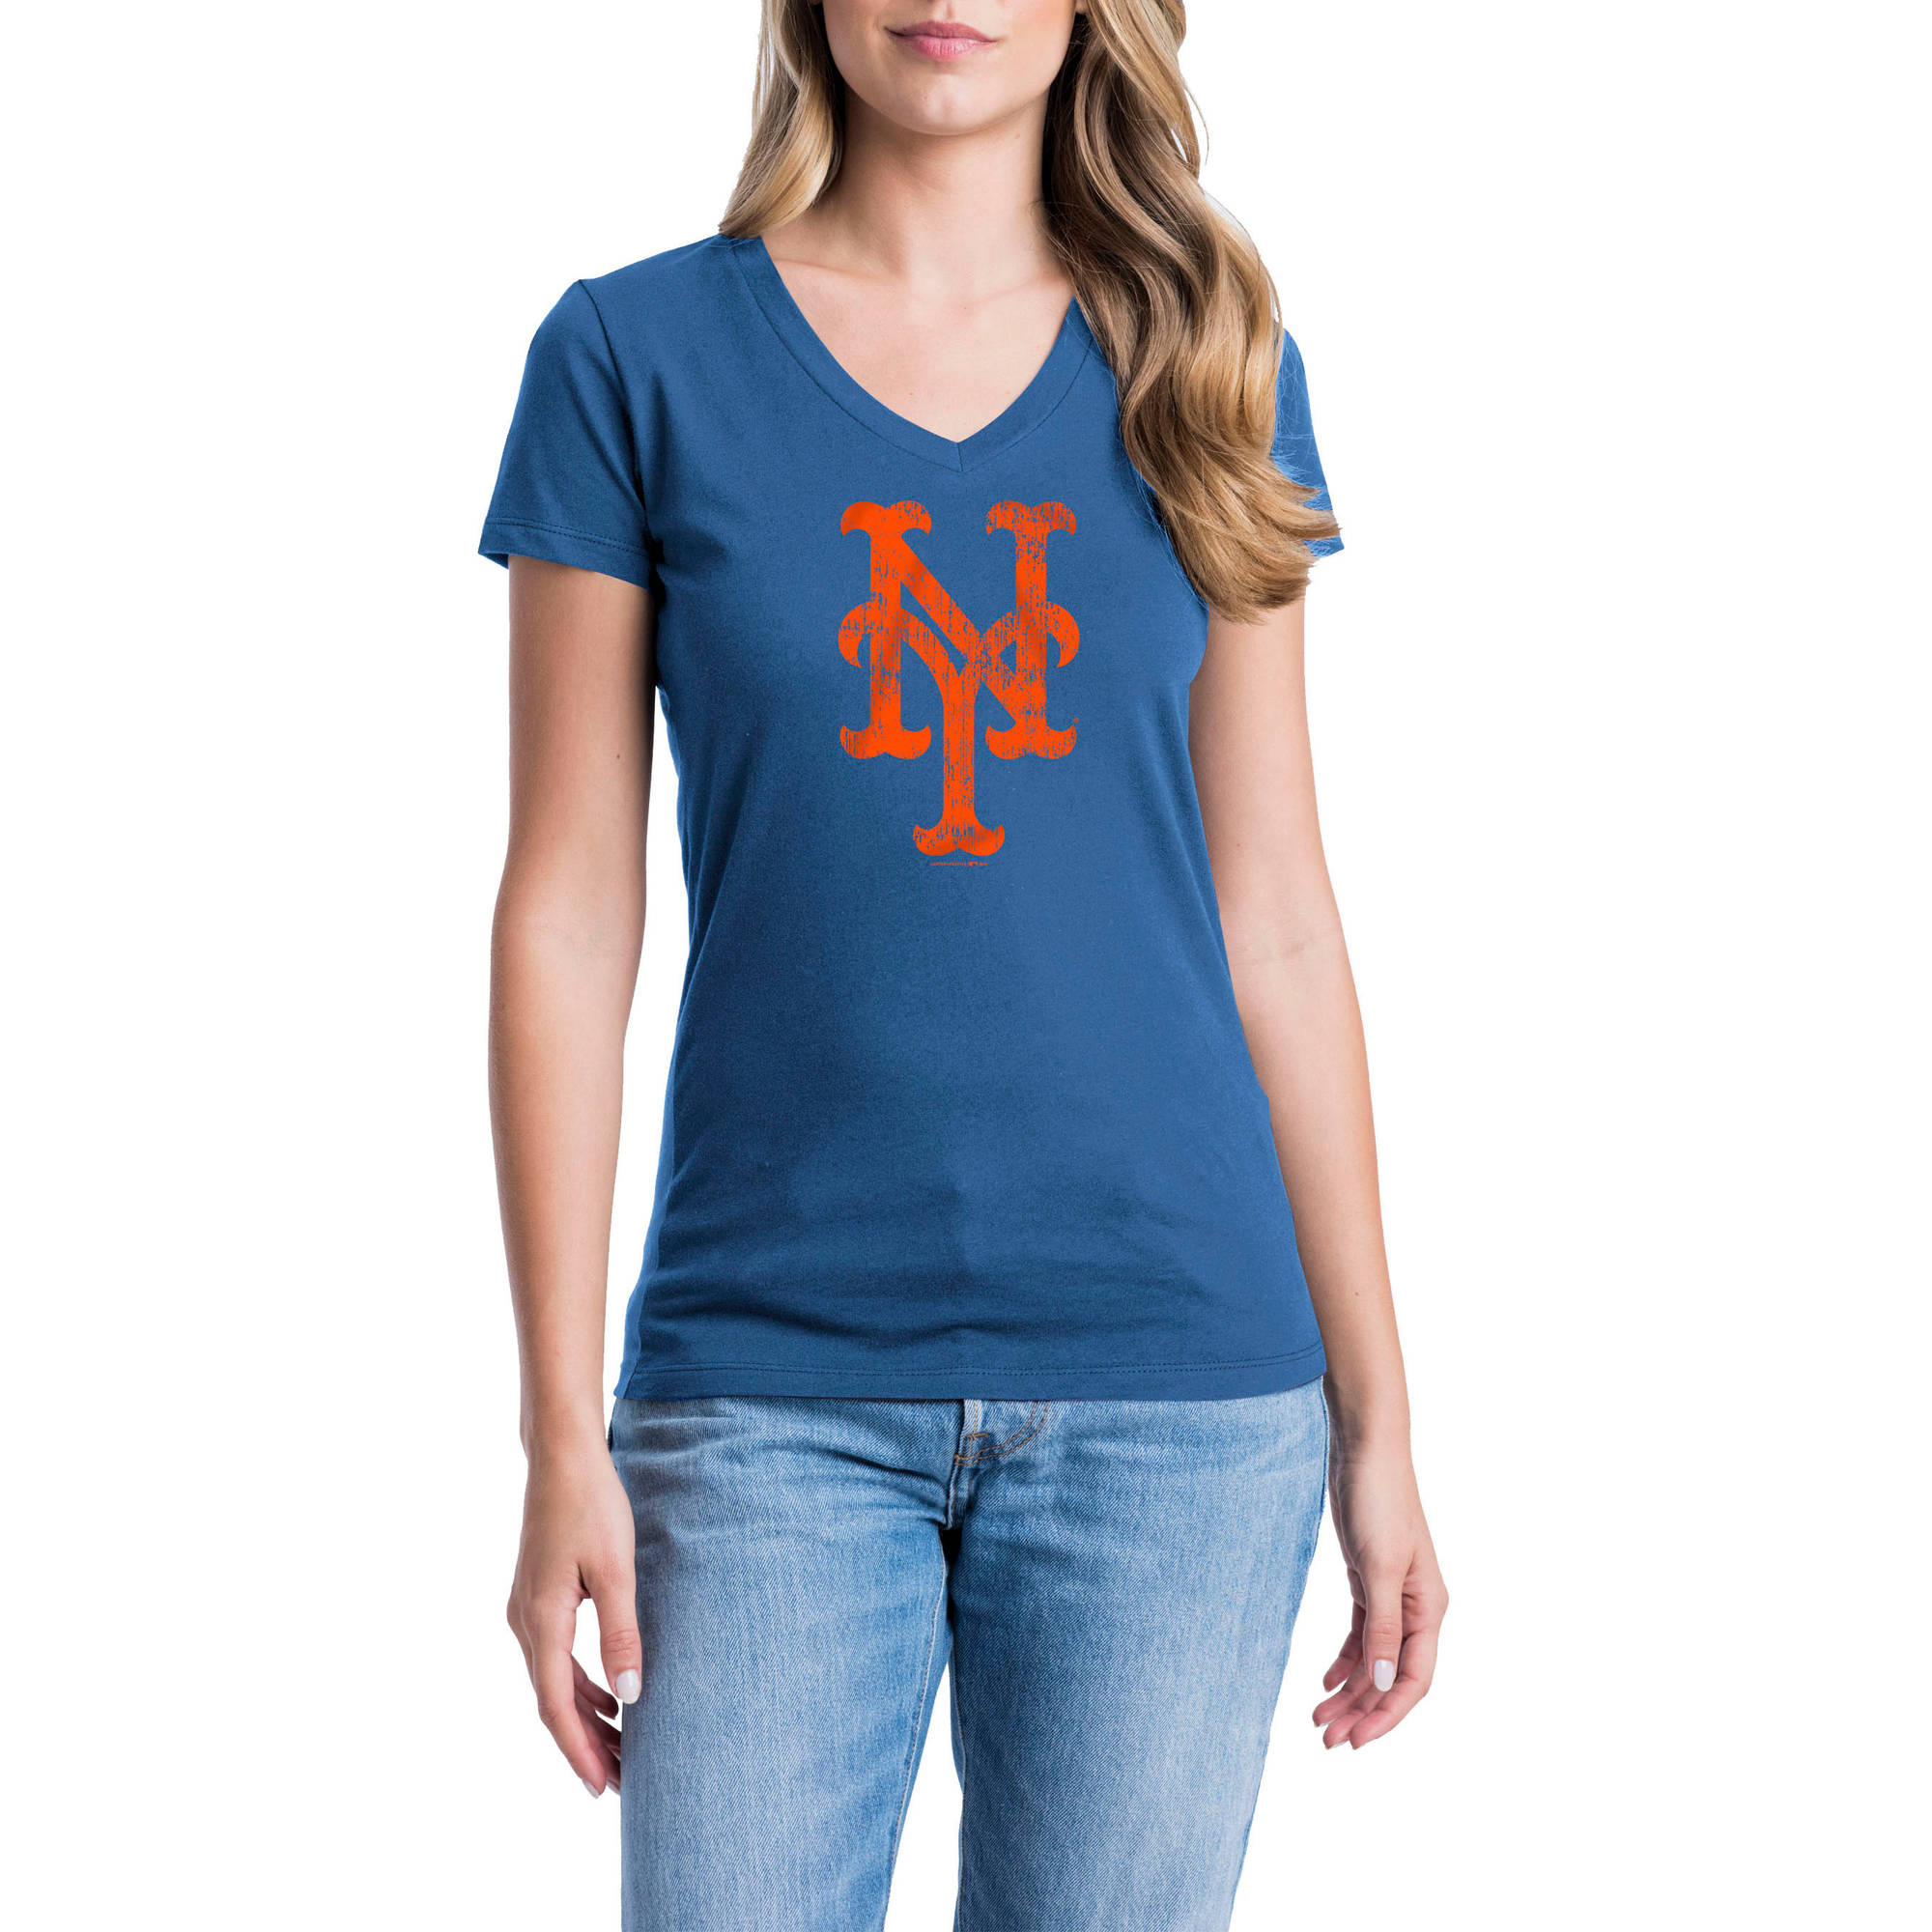 New York Mets Womens Short Sleeve Graphic Tee